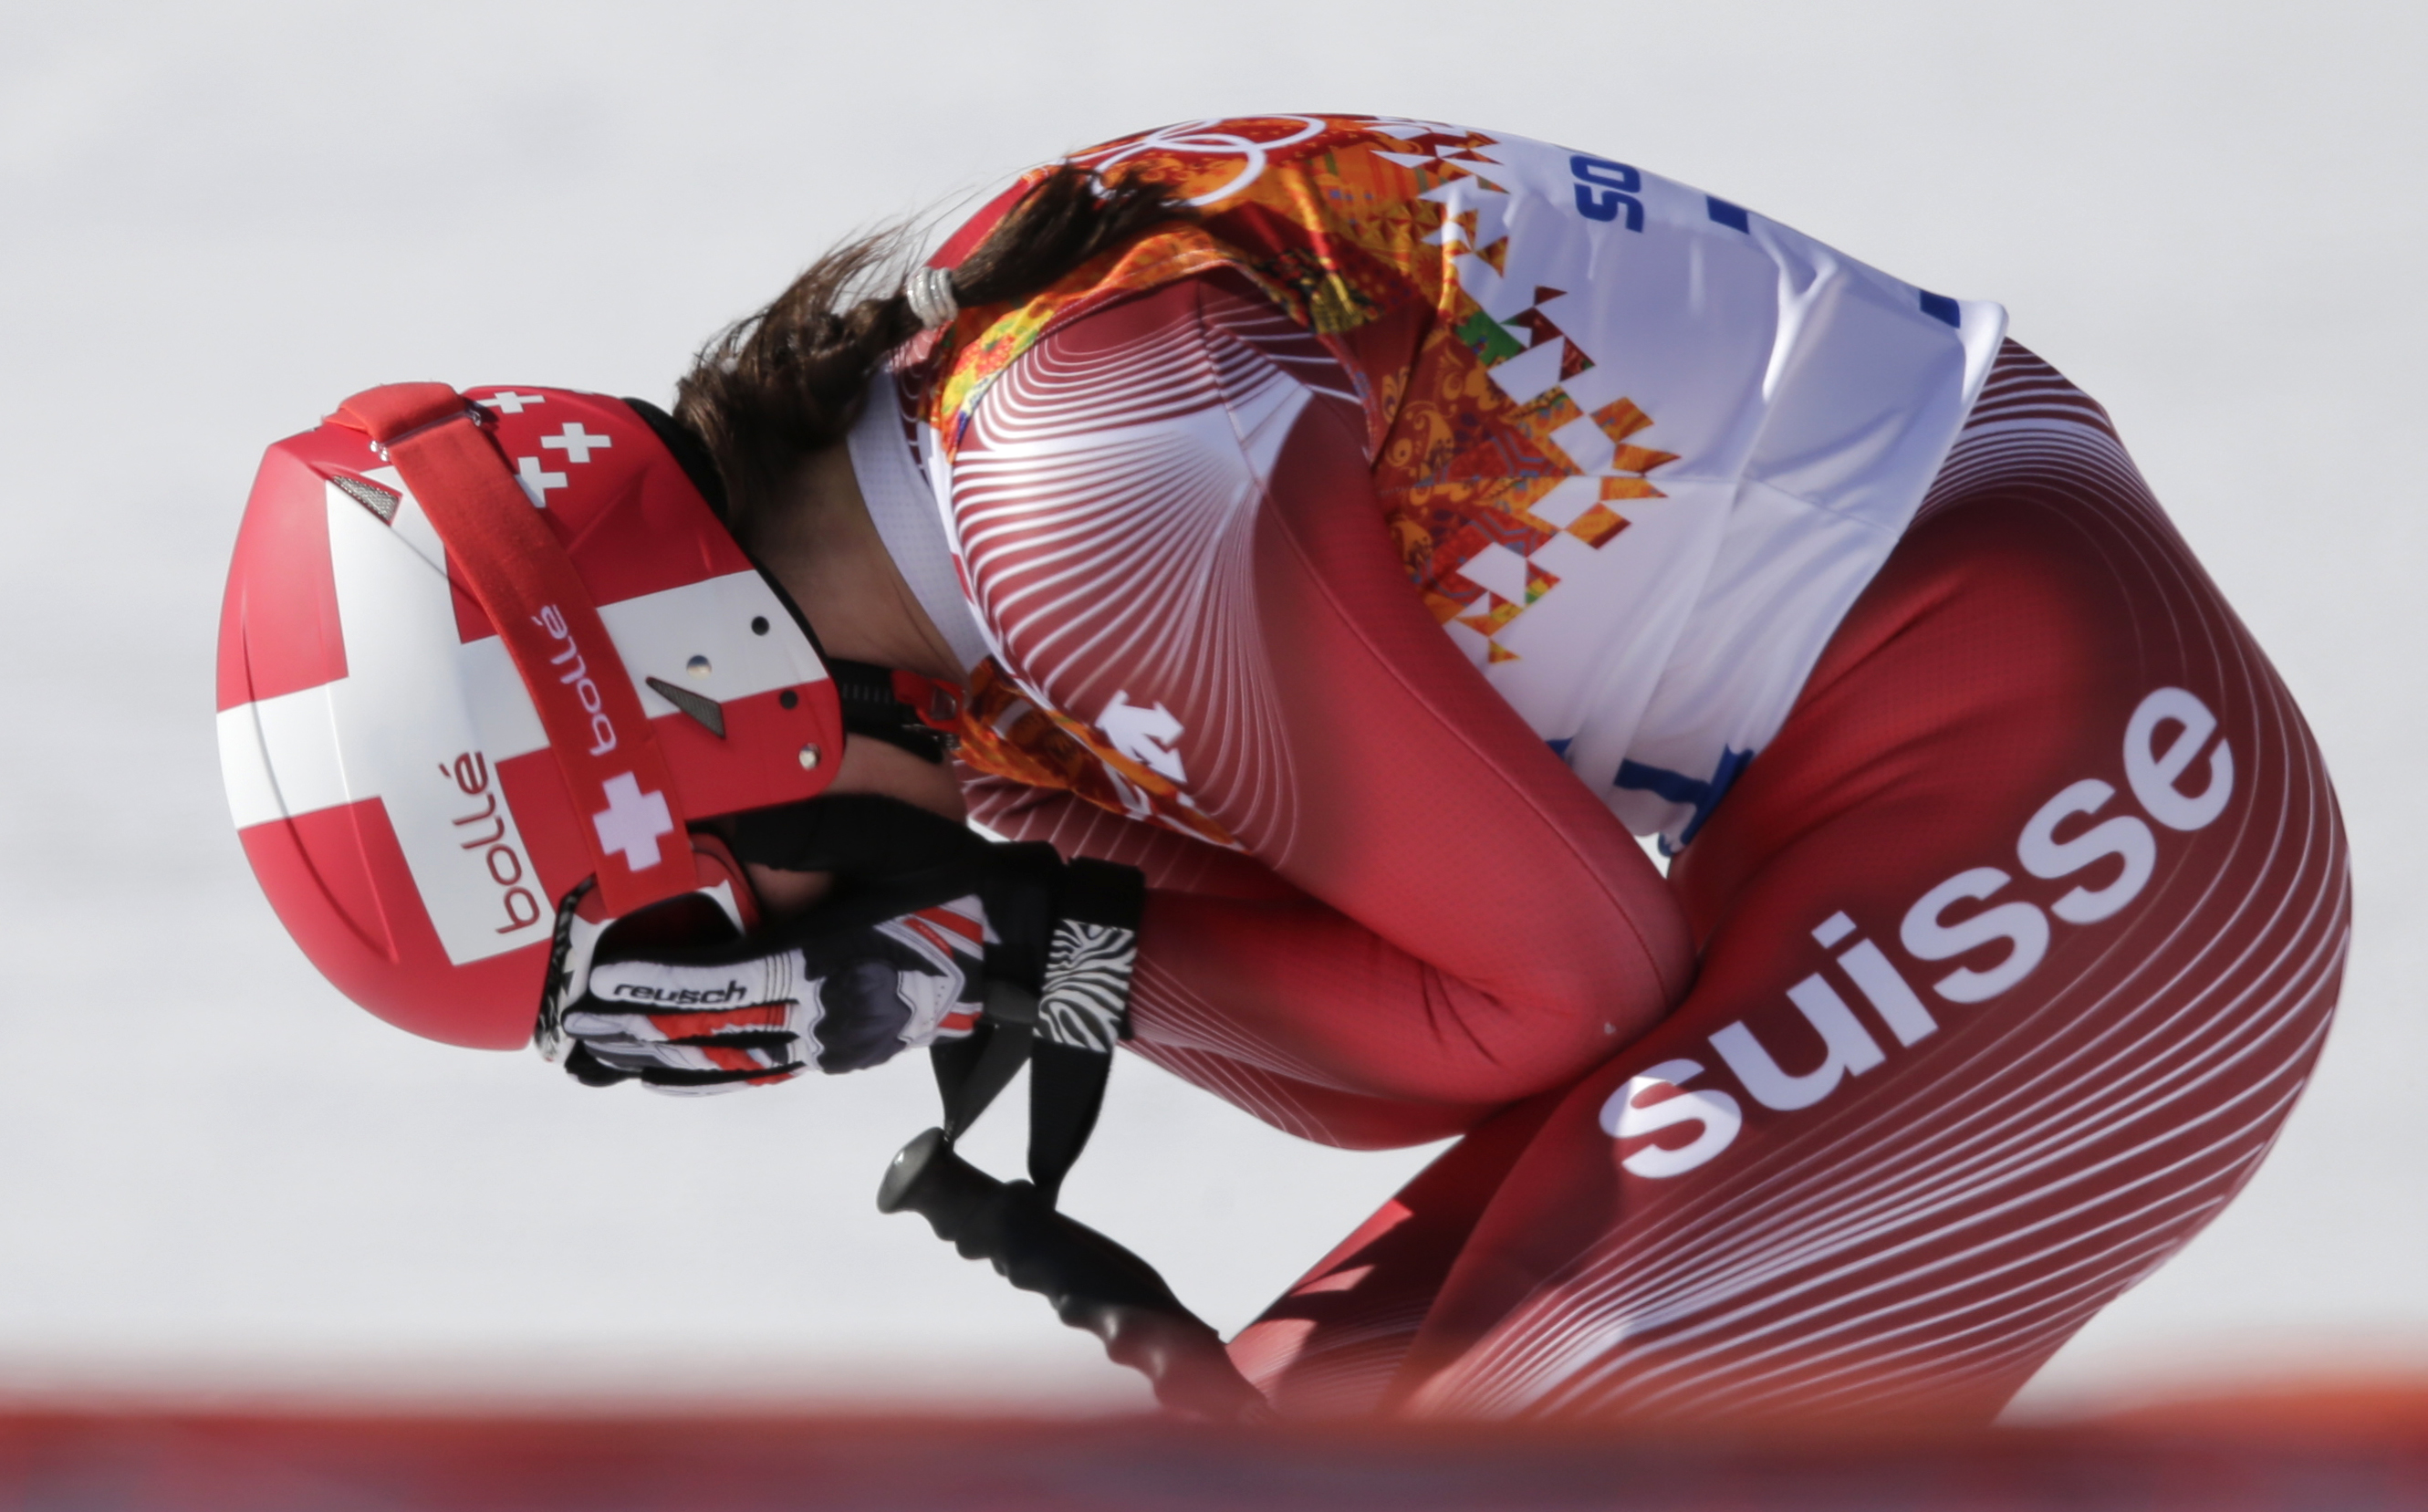 Switzerland's Dominique Gisin reacts after a women's downhill training run for the Sochi 2014 Winter Olympics, Friday, Feb. 7, 2014, in Krasnaya Polyana, Russia. (AP Photo/Gero Breloer)